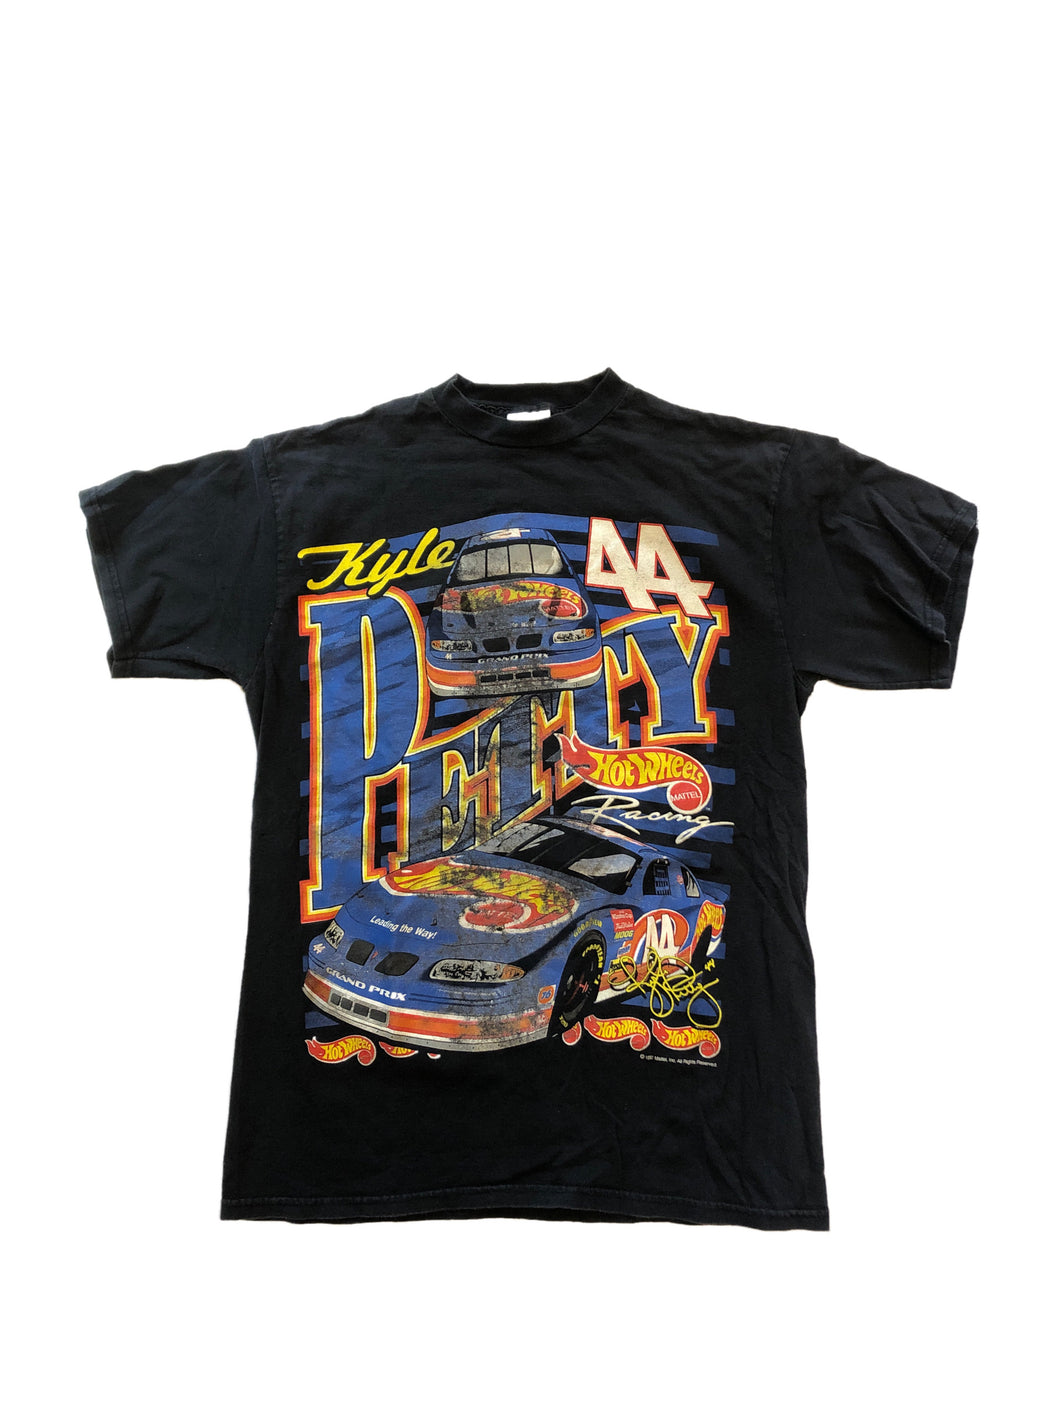 Kyle Petty Hot Wheels Tee